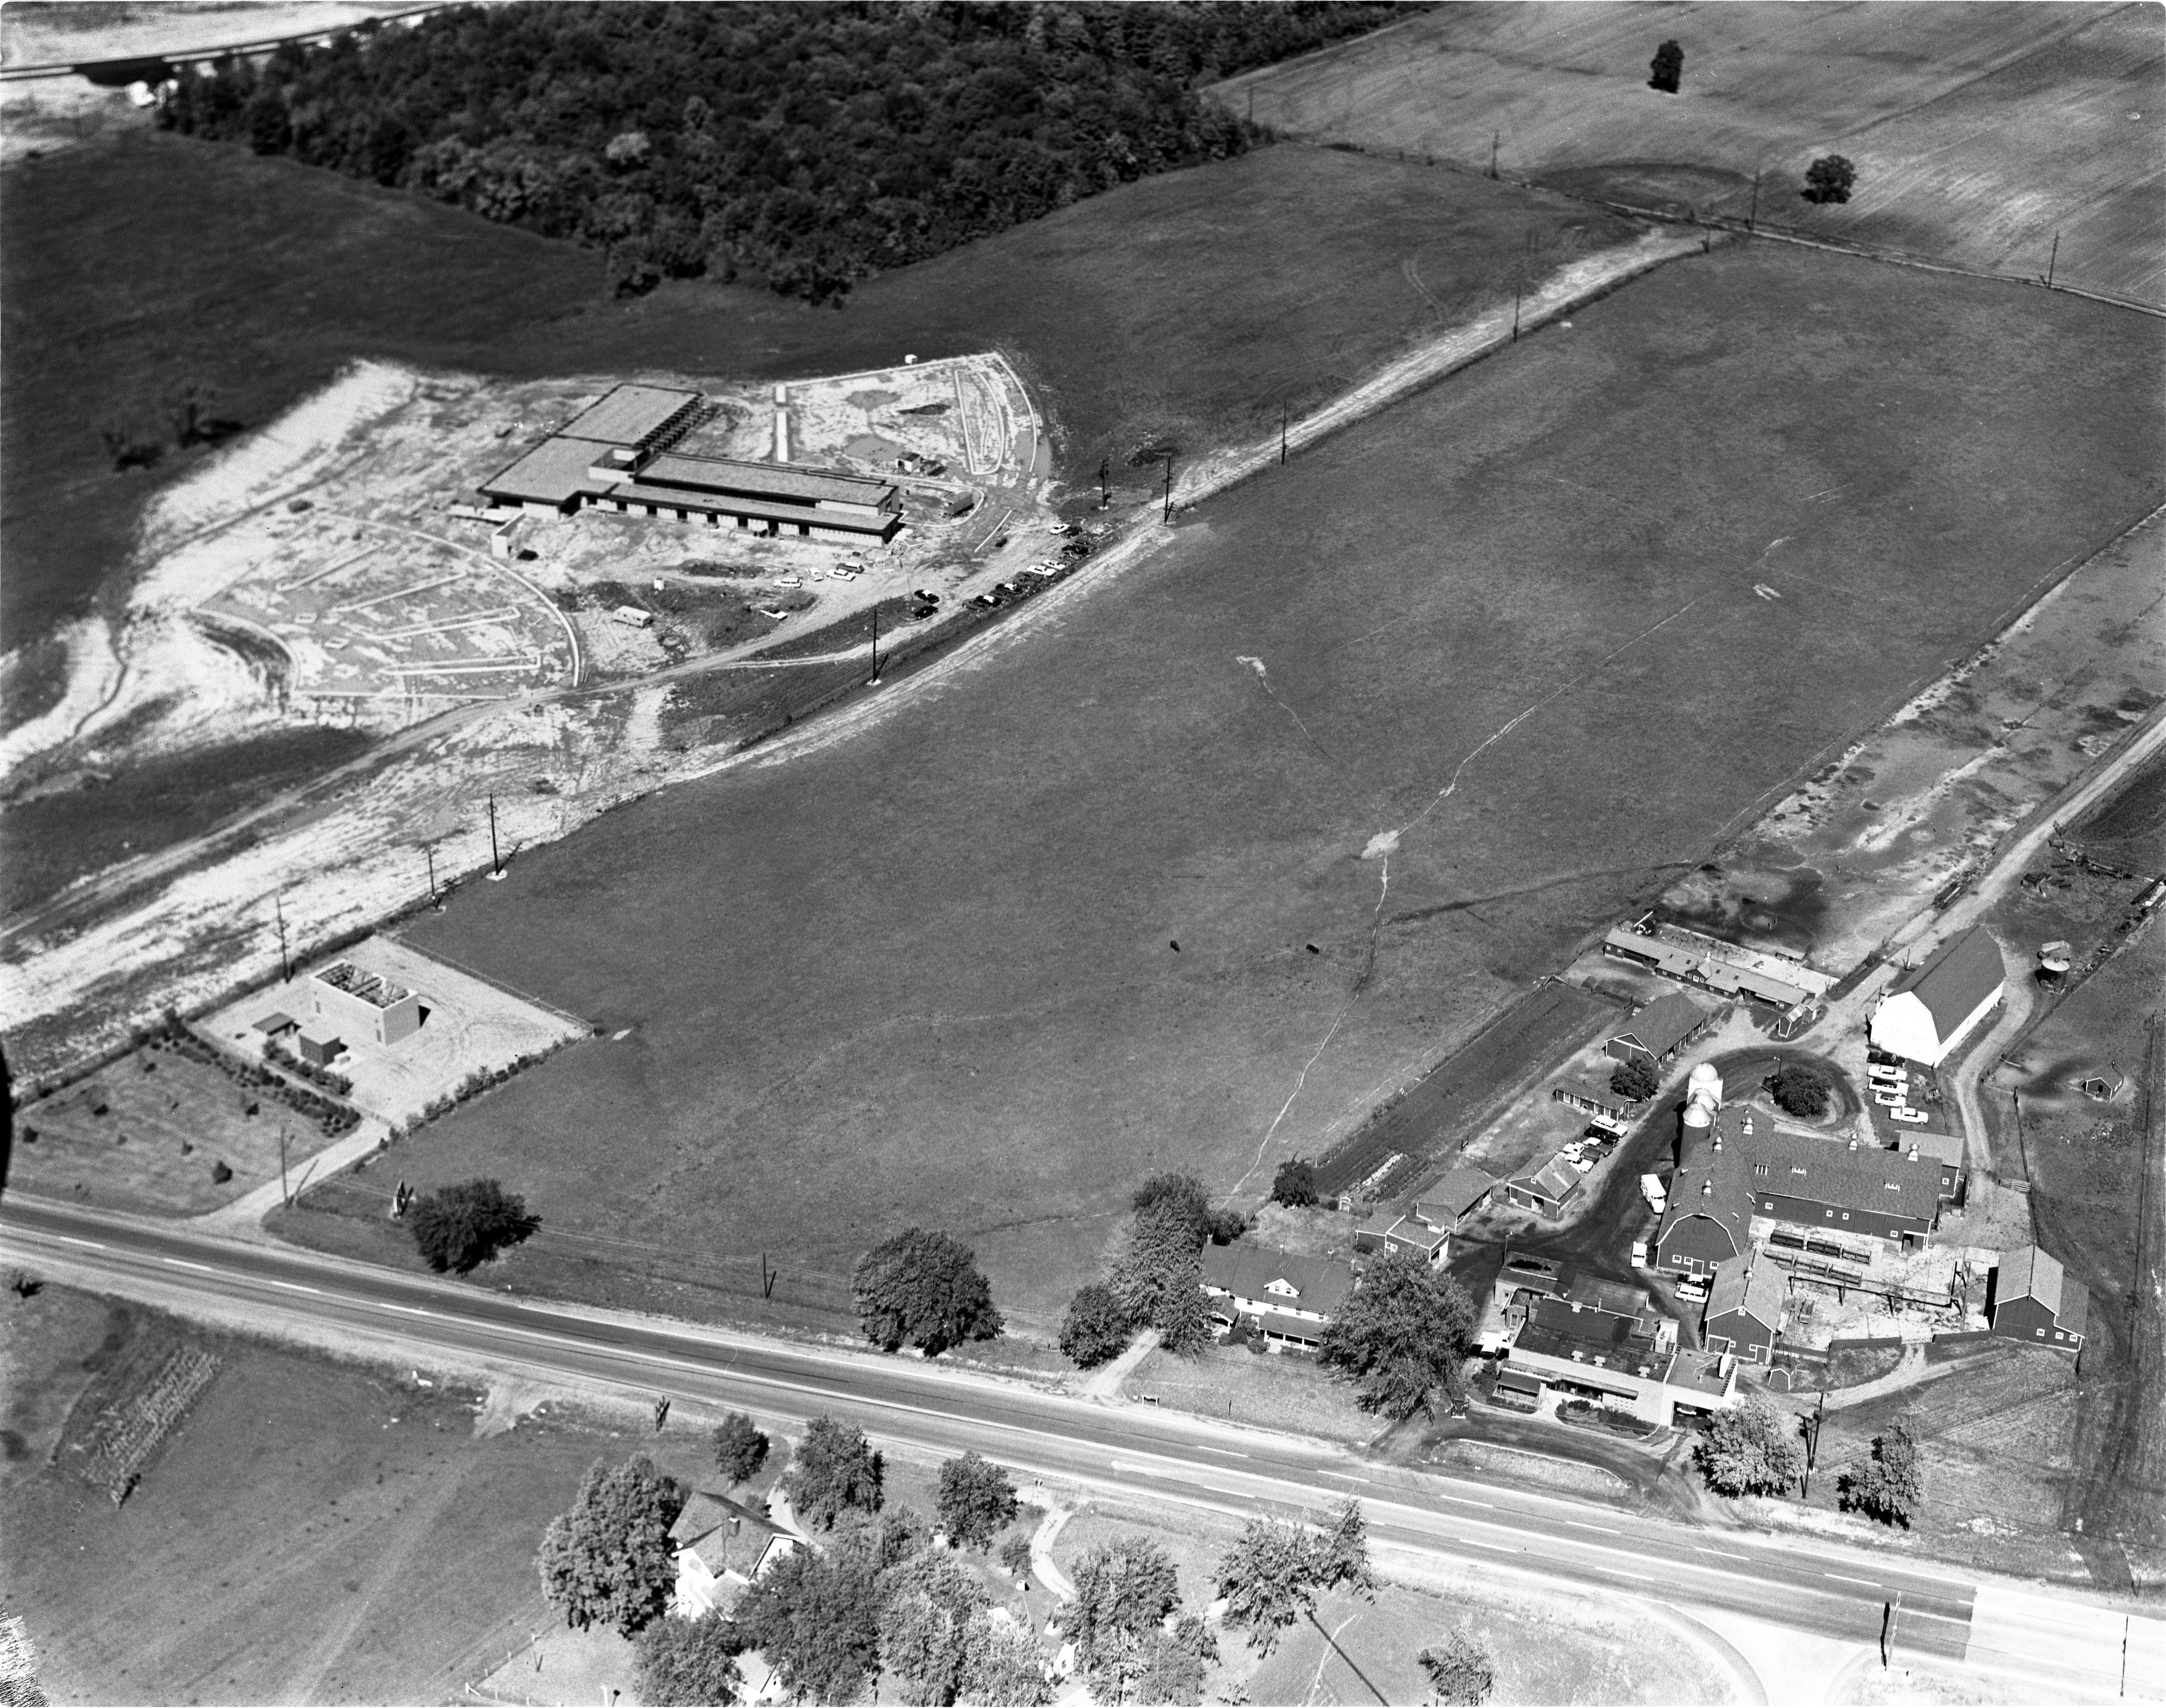 Aerial View Of Bolgos Farms & The Conductron Corporation, September 26, 1963 image